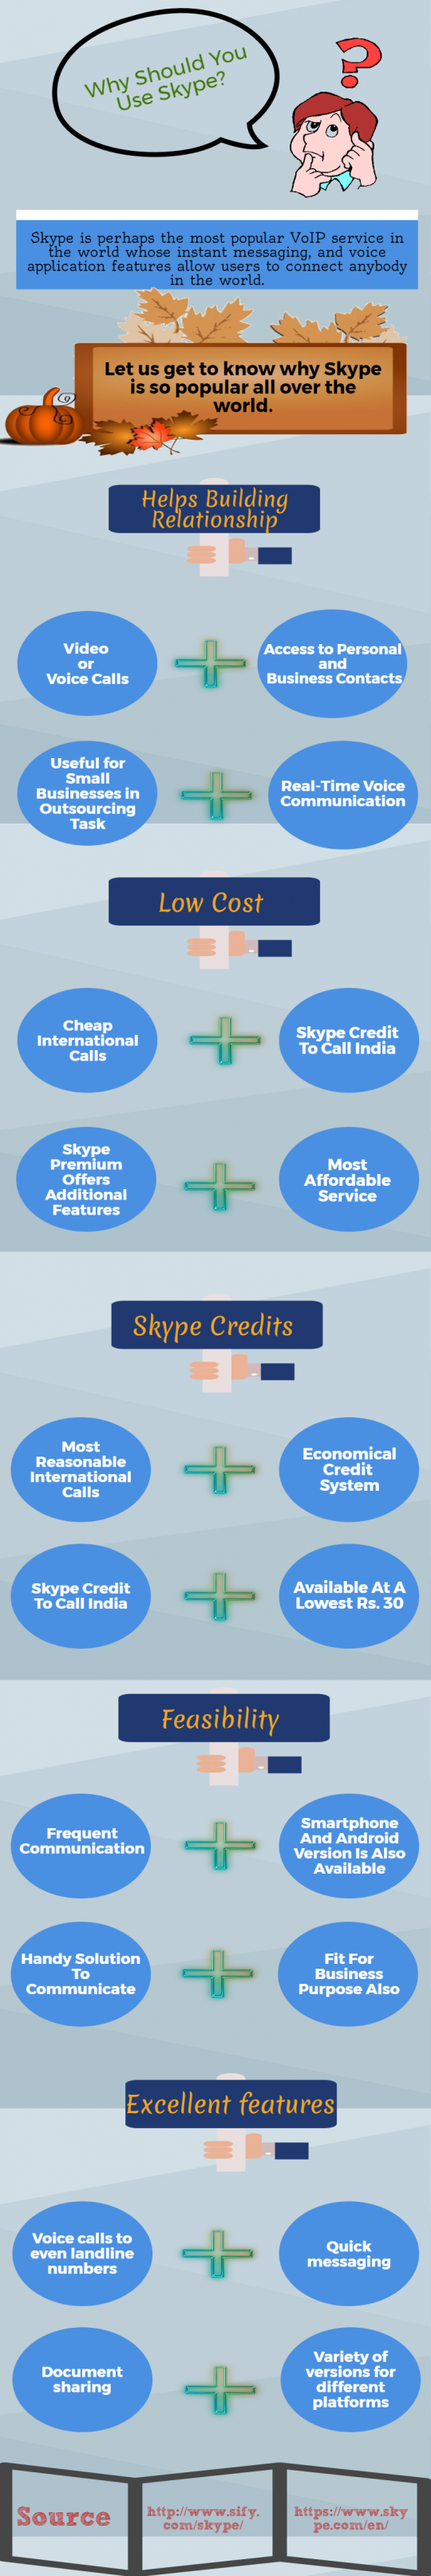 Why Should You Use Skype?